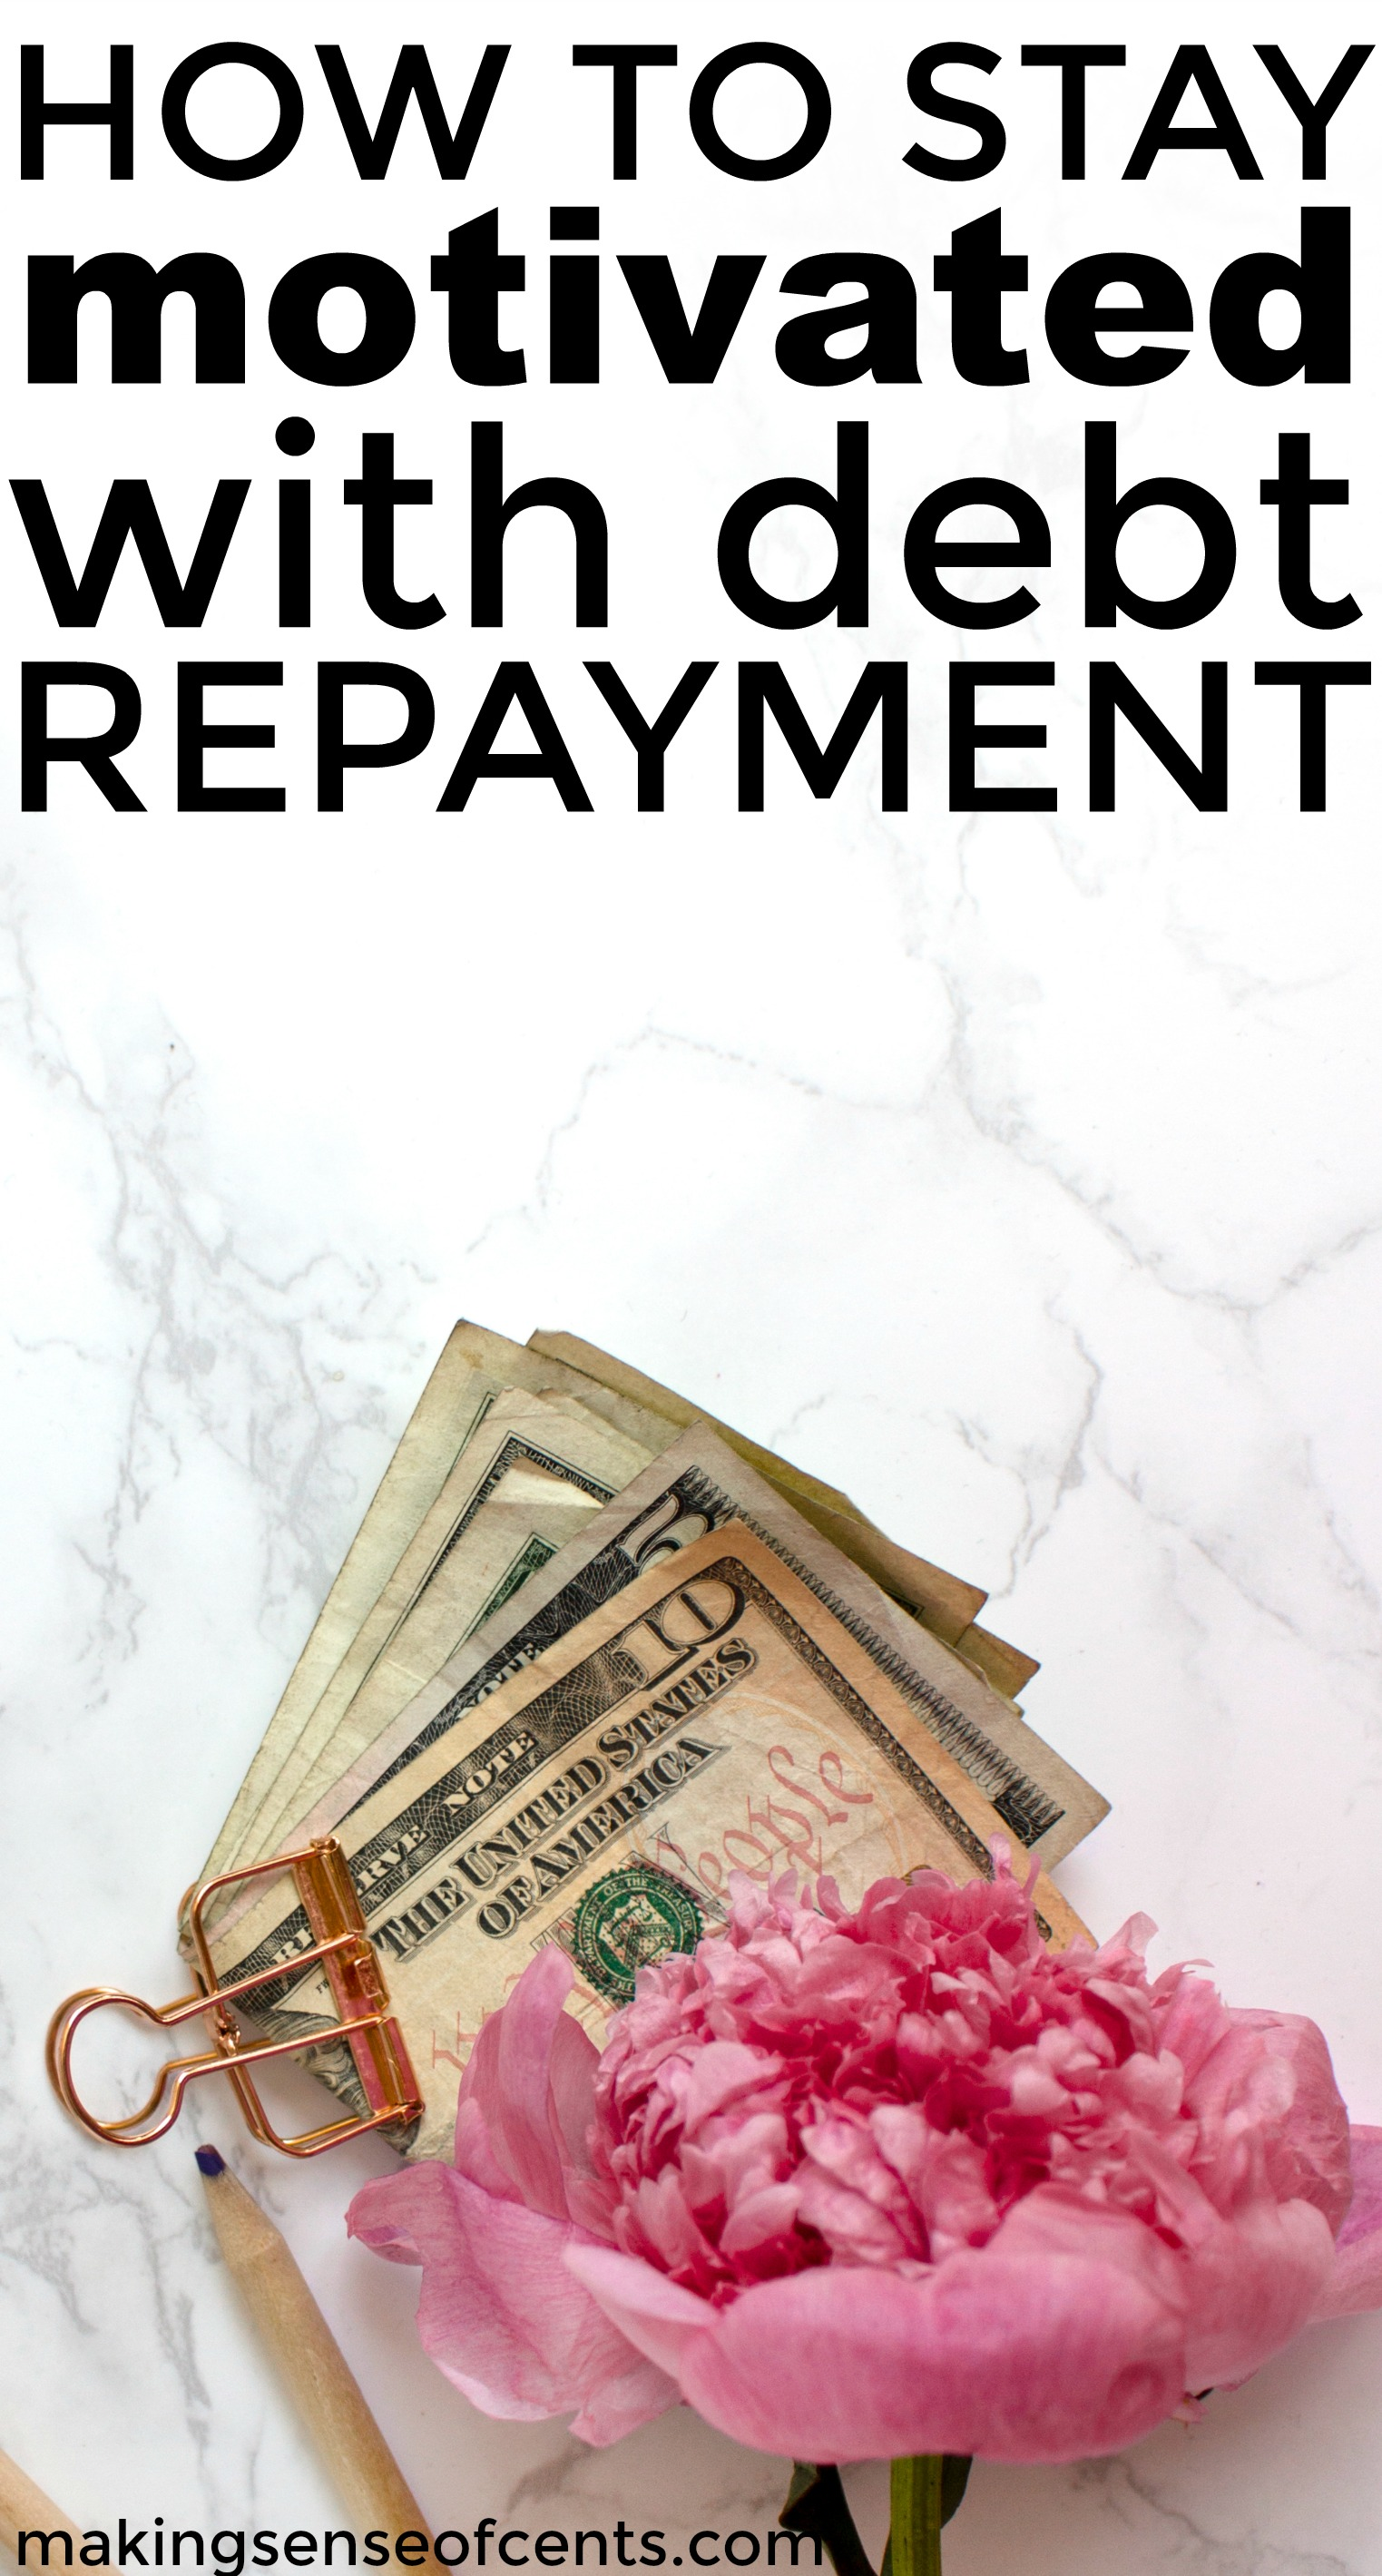 Find out how tos tay motivated with debt repayment. This is a great list.